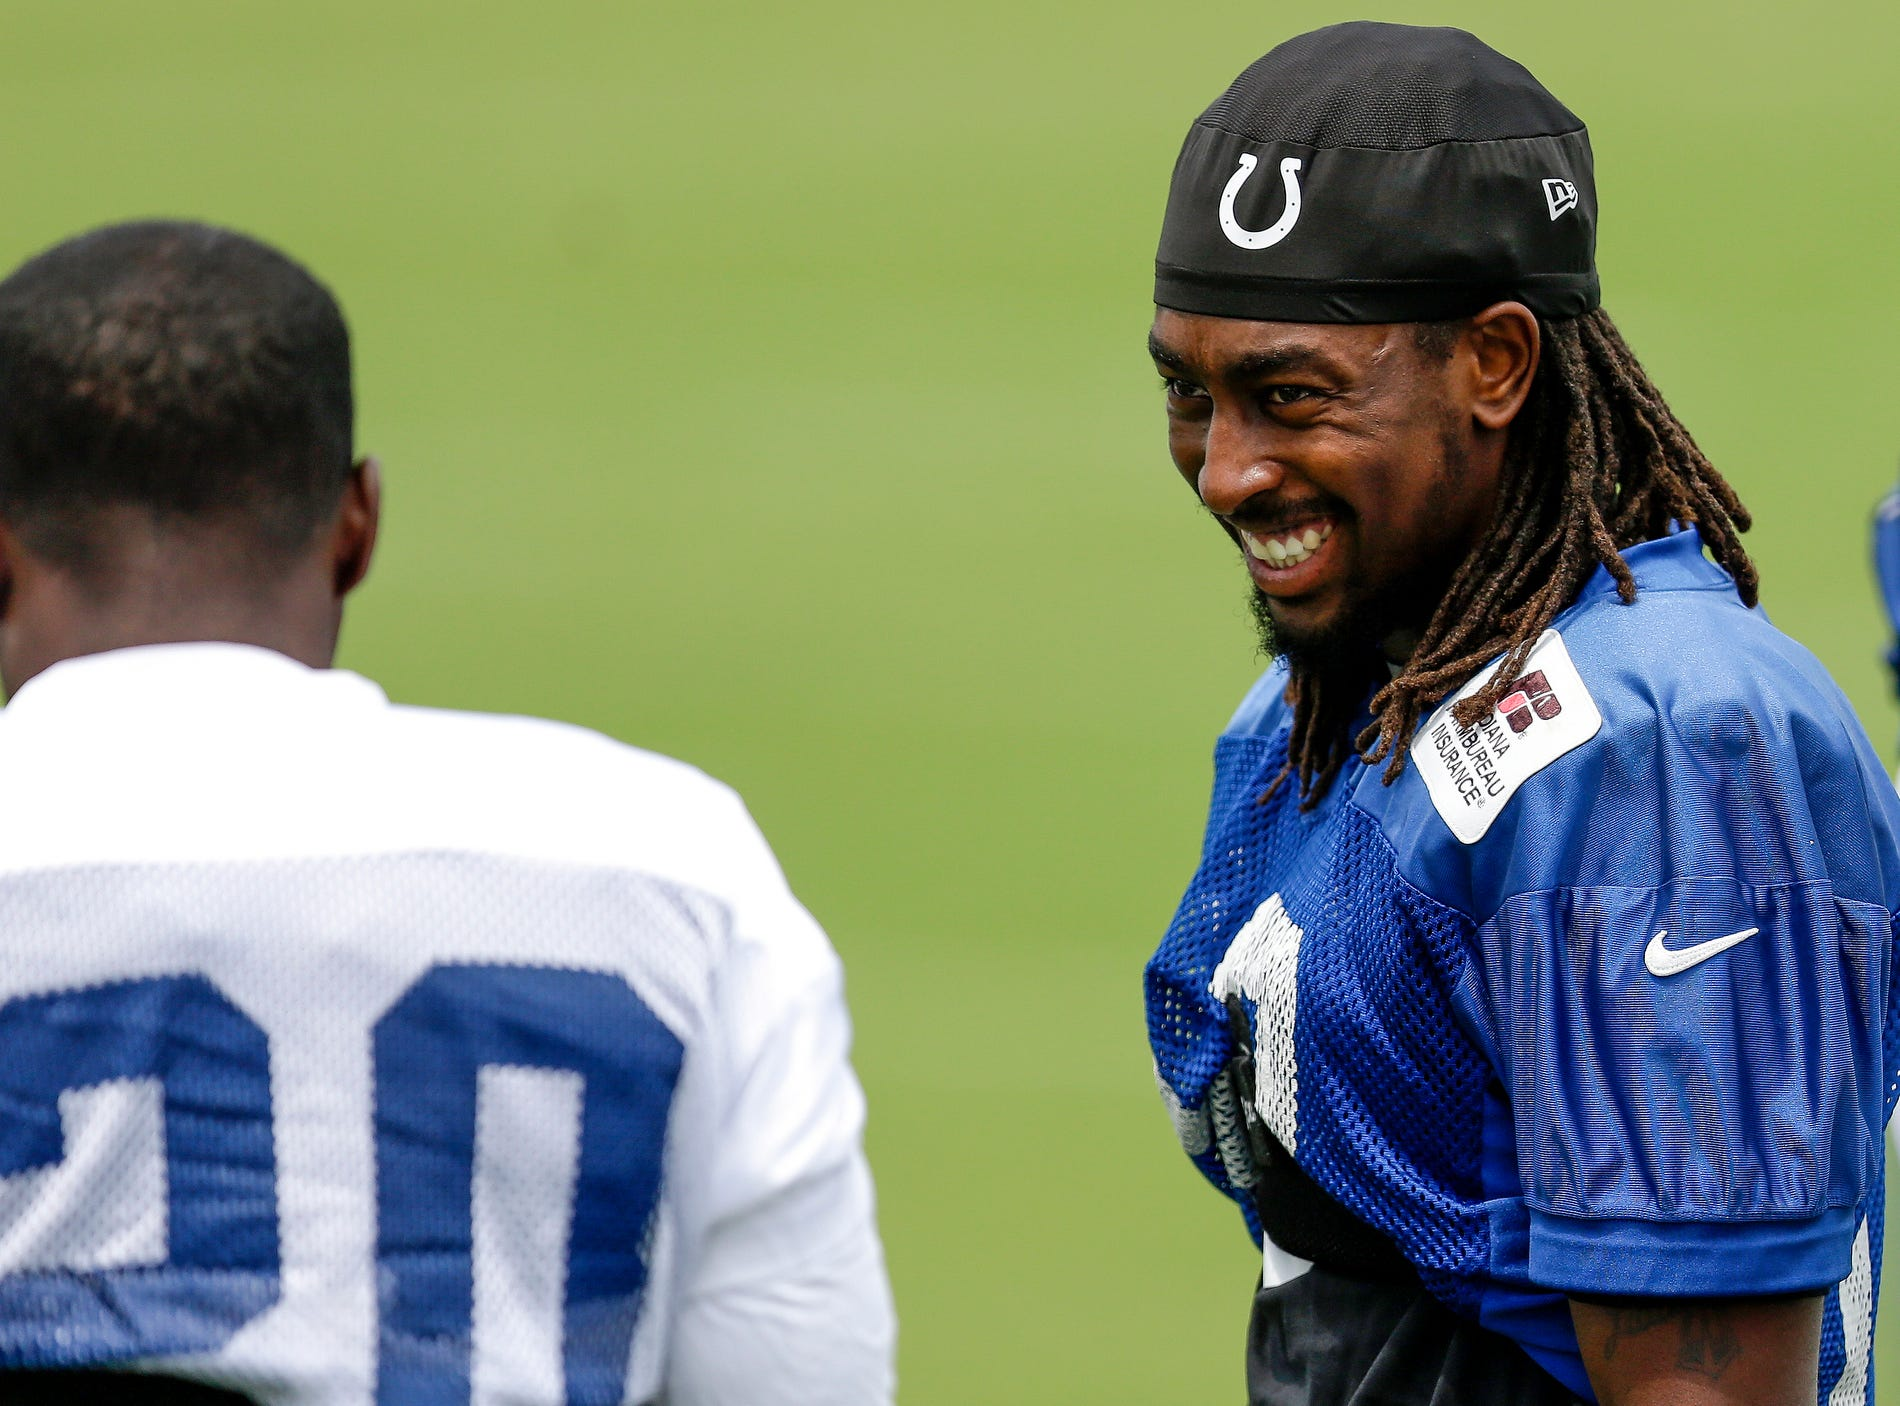 Indianapolis Colts wide receiver T.Y. Hilton (13) laughs with teammate corner back Darius Butler (20) during the Indianapolis Colts NFL training camp at Anderson University on July 28, 2016.